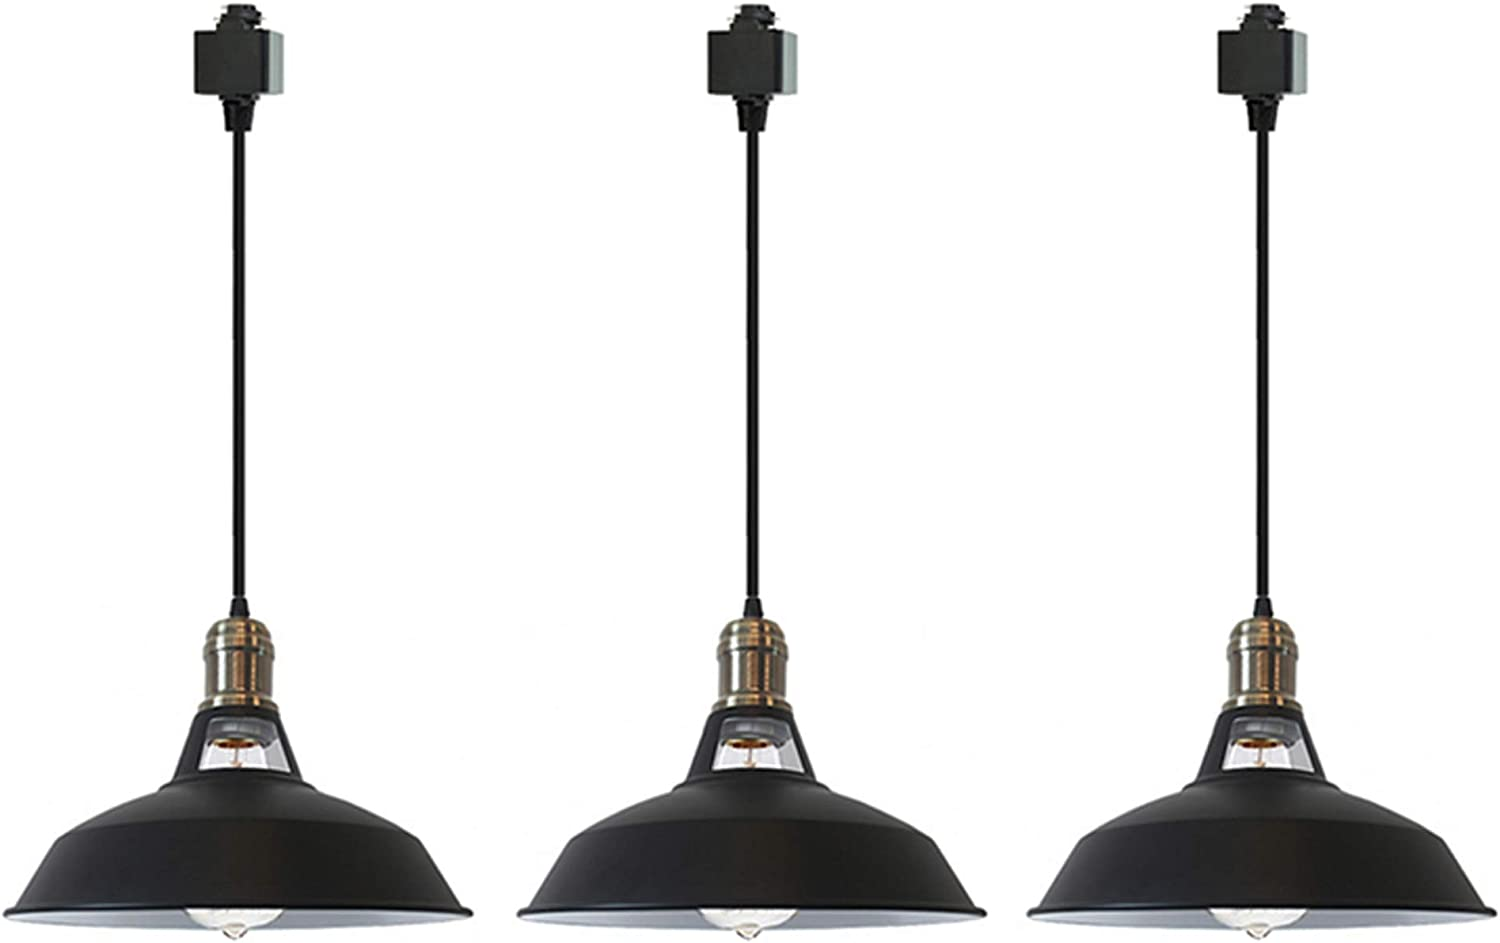 SKIVTGLAMP Low price Iron NEW before selling ☆ H-Type Track Pendant Cord Lighting 11.8in Custom